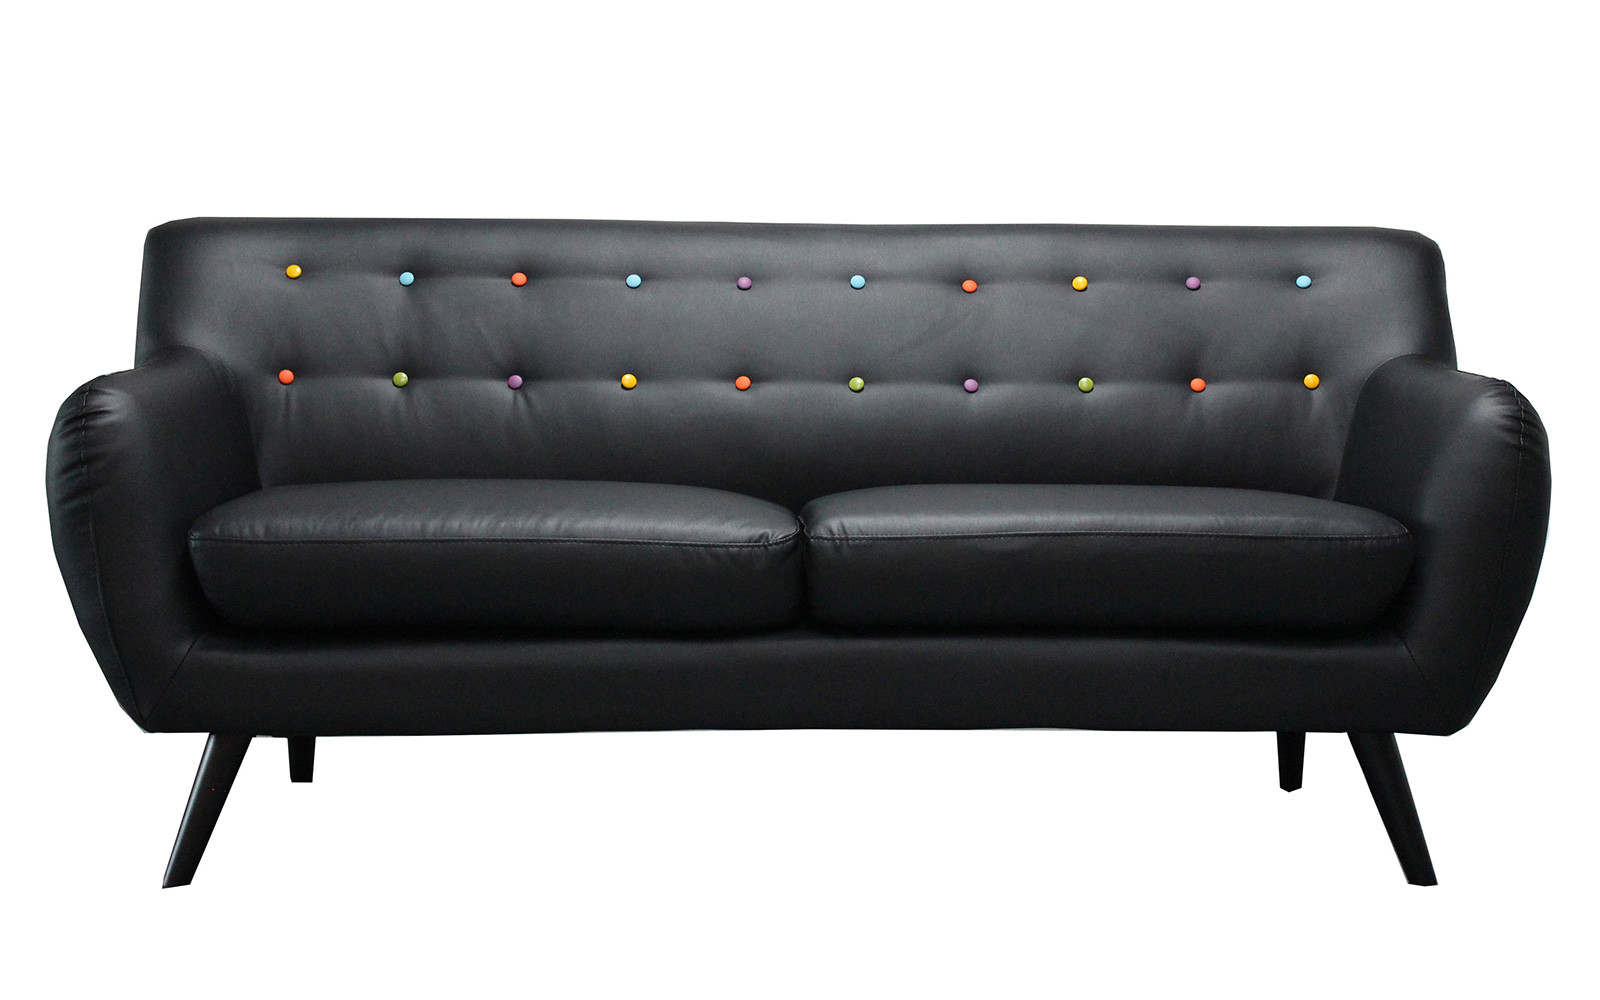 Mid Century Modern Tufted Bonded Leather Sofa - Walmart.com